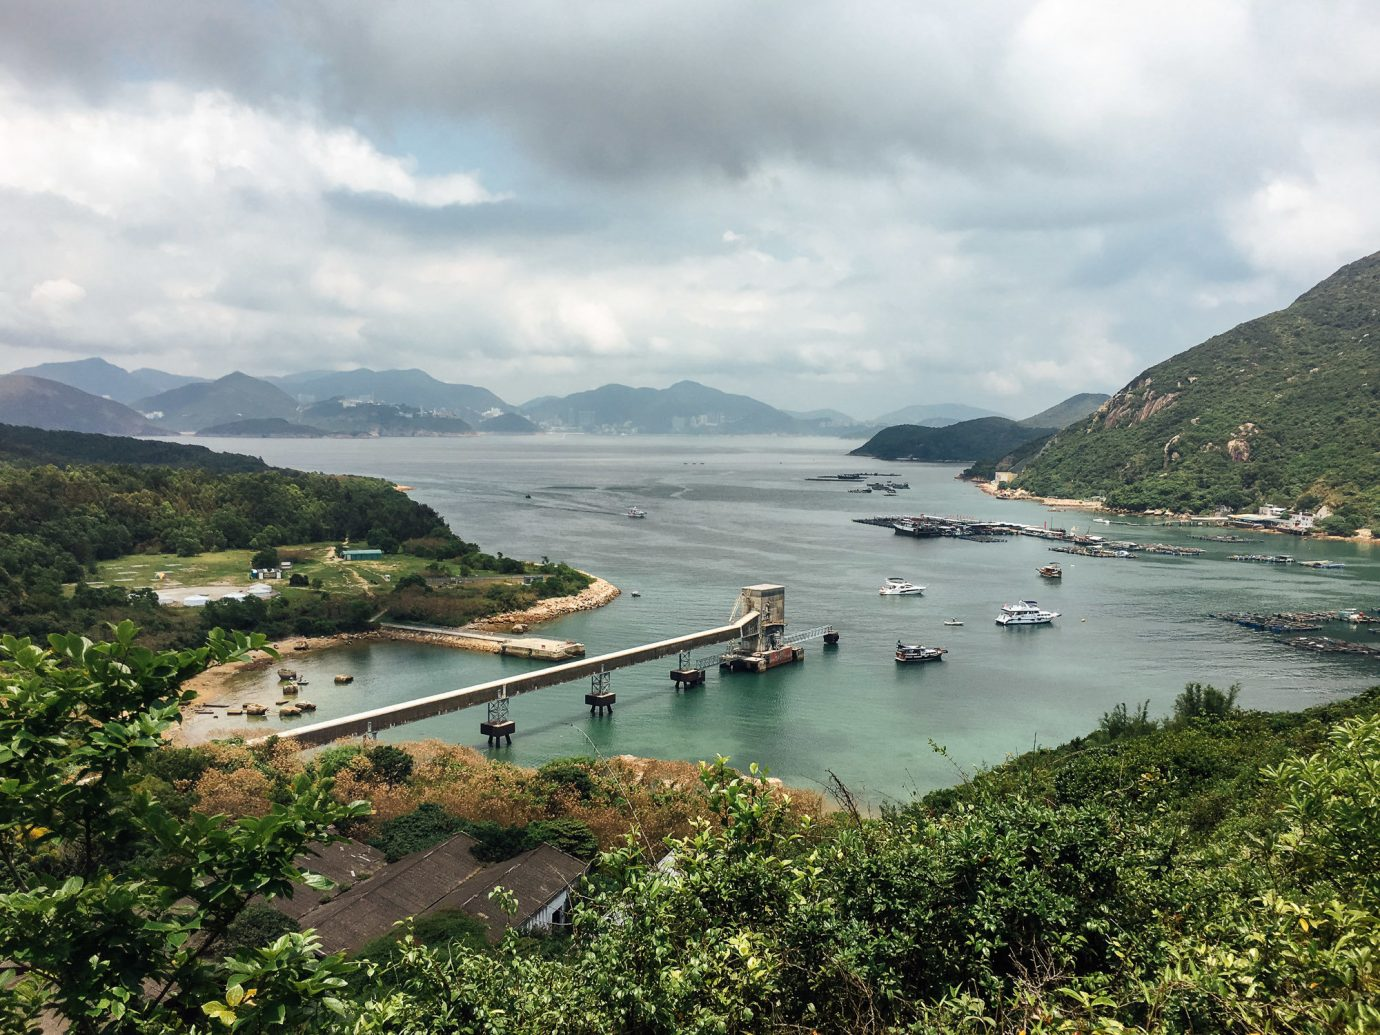 Bay Area at Lamma Island